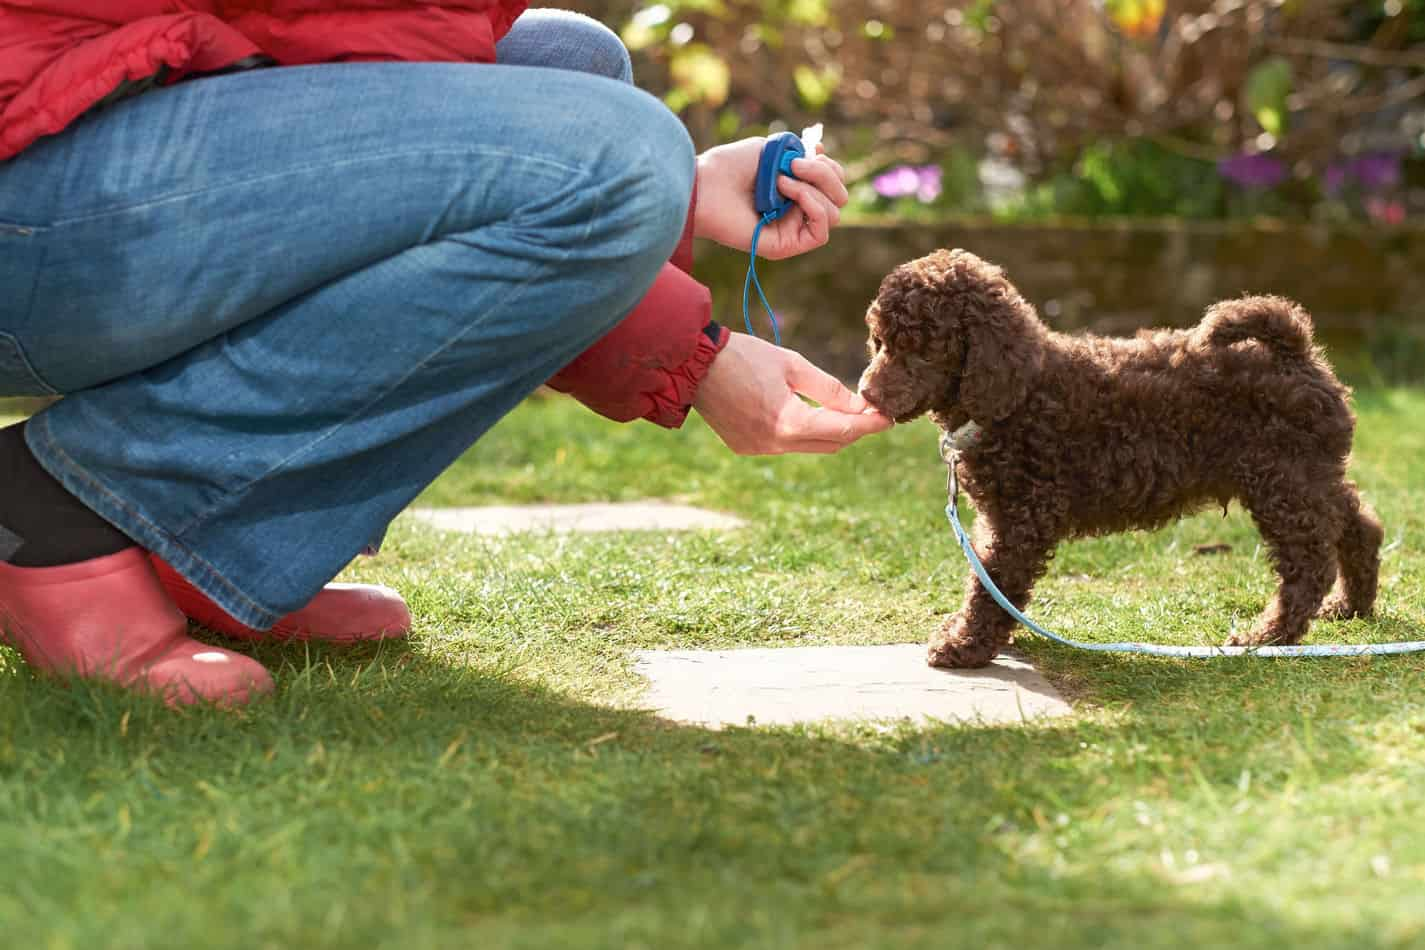 Are Poodles Easy to Train?